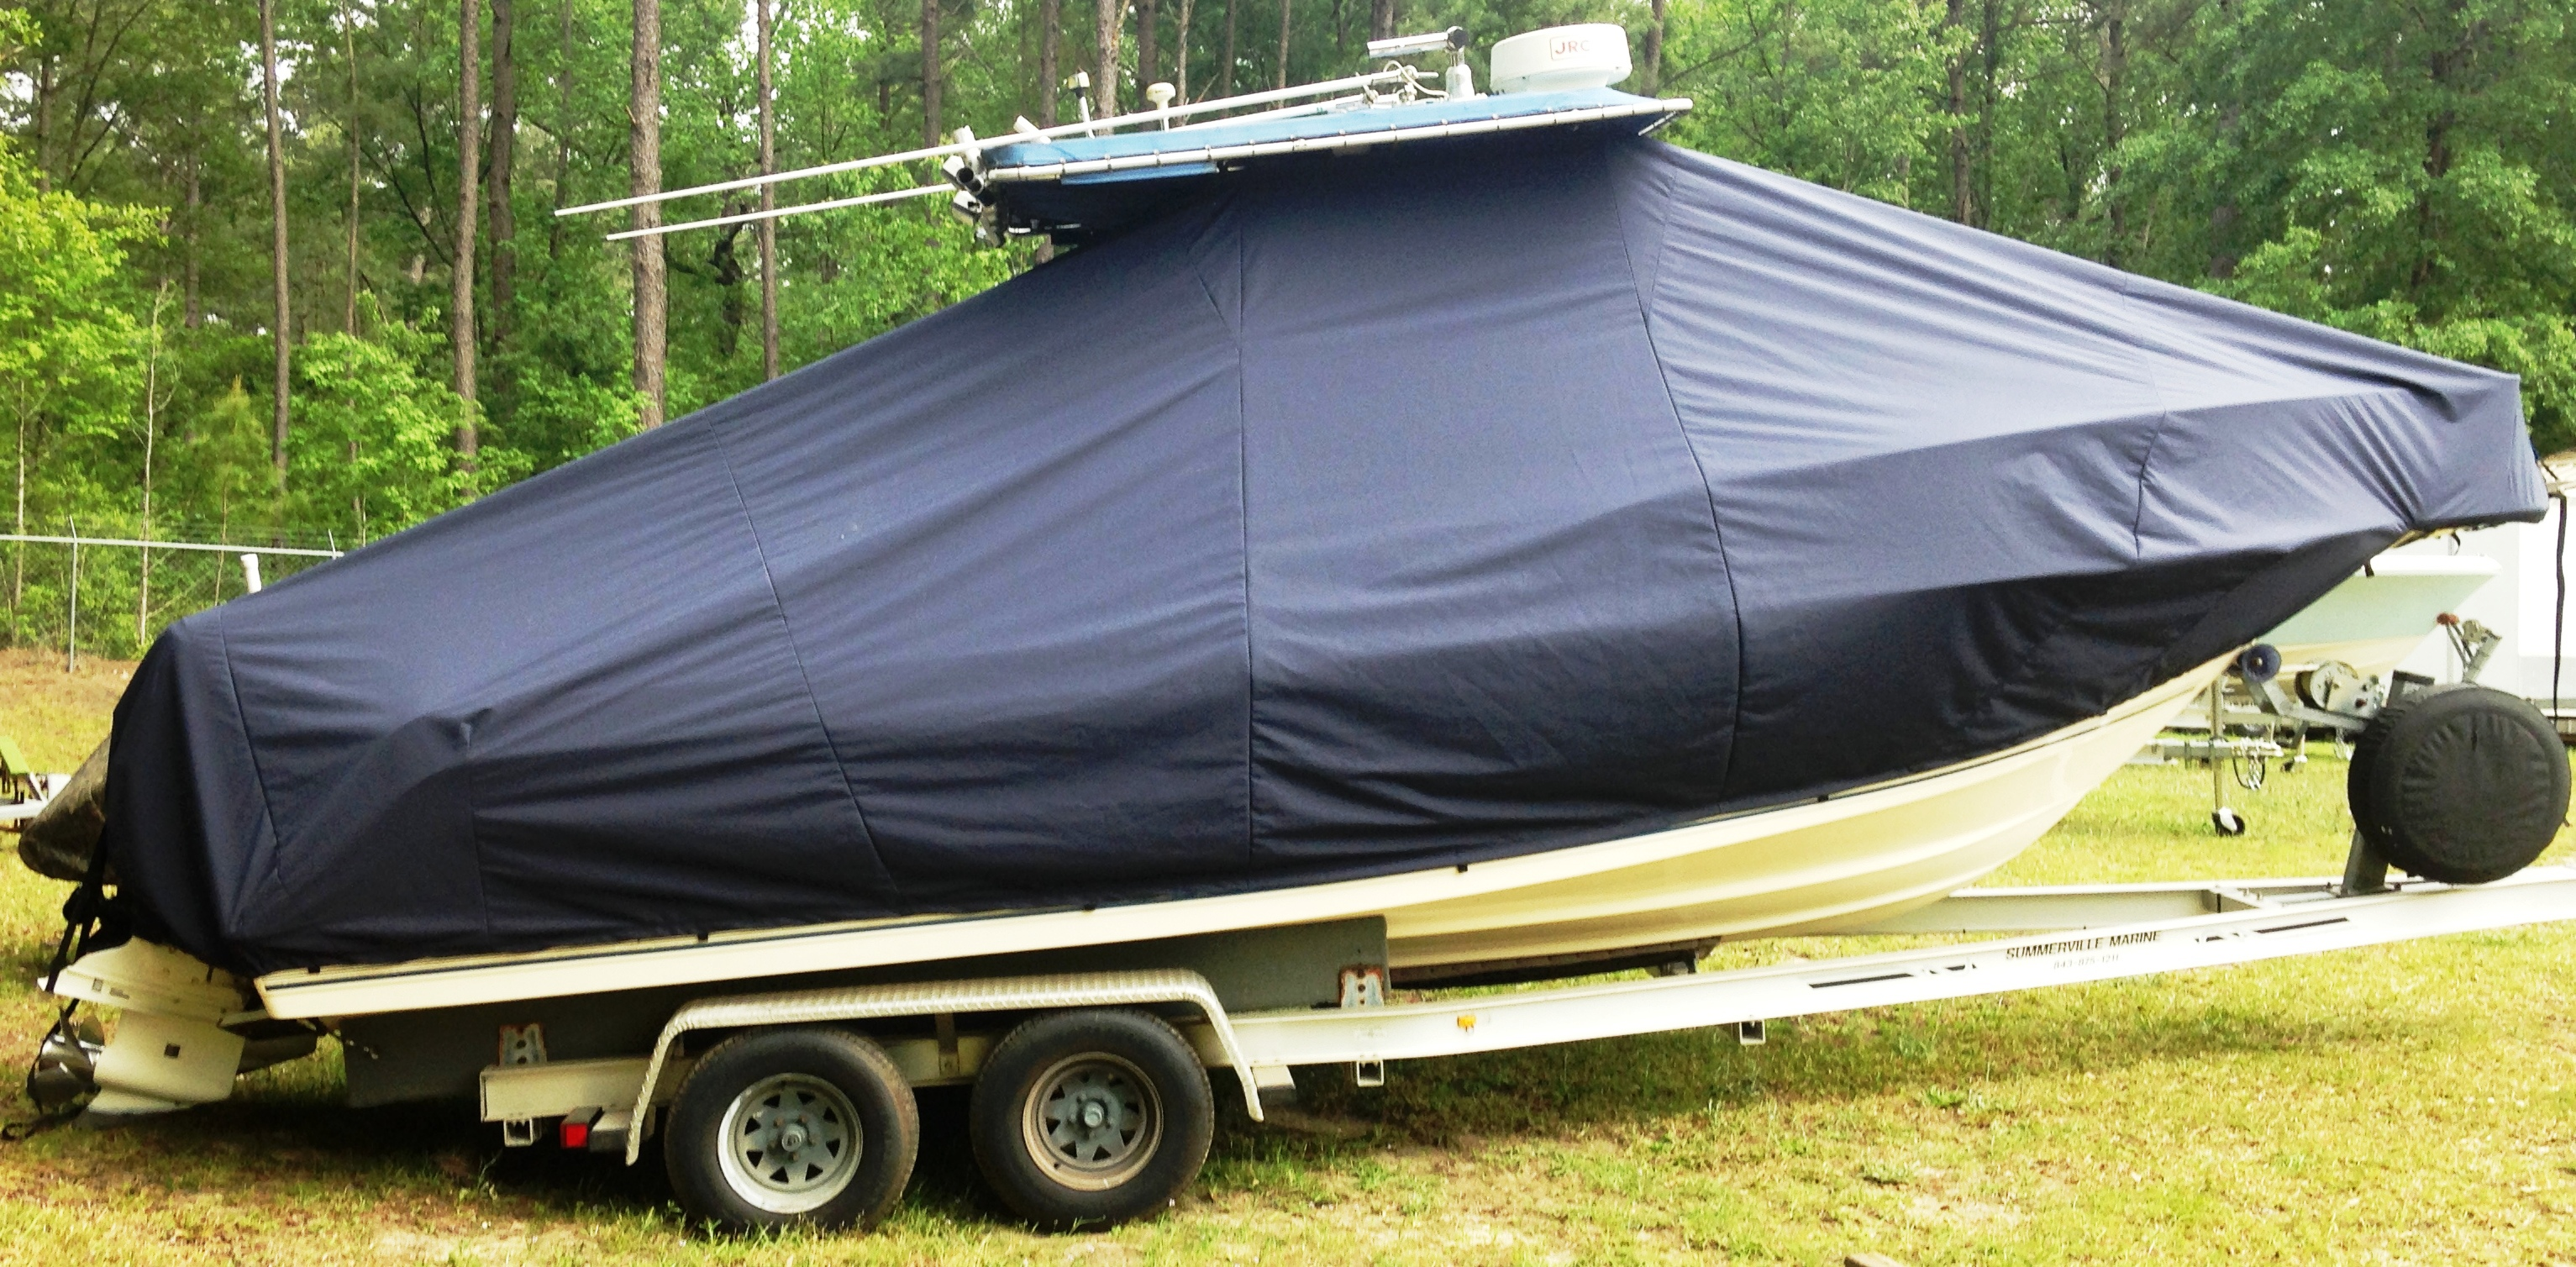 Key West 2300CC, 19xx, TTopCovers™ T-Top boat cover, starboard side